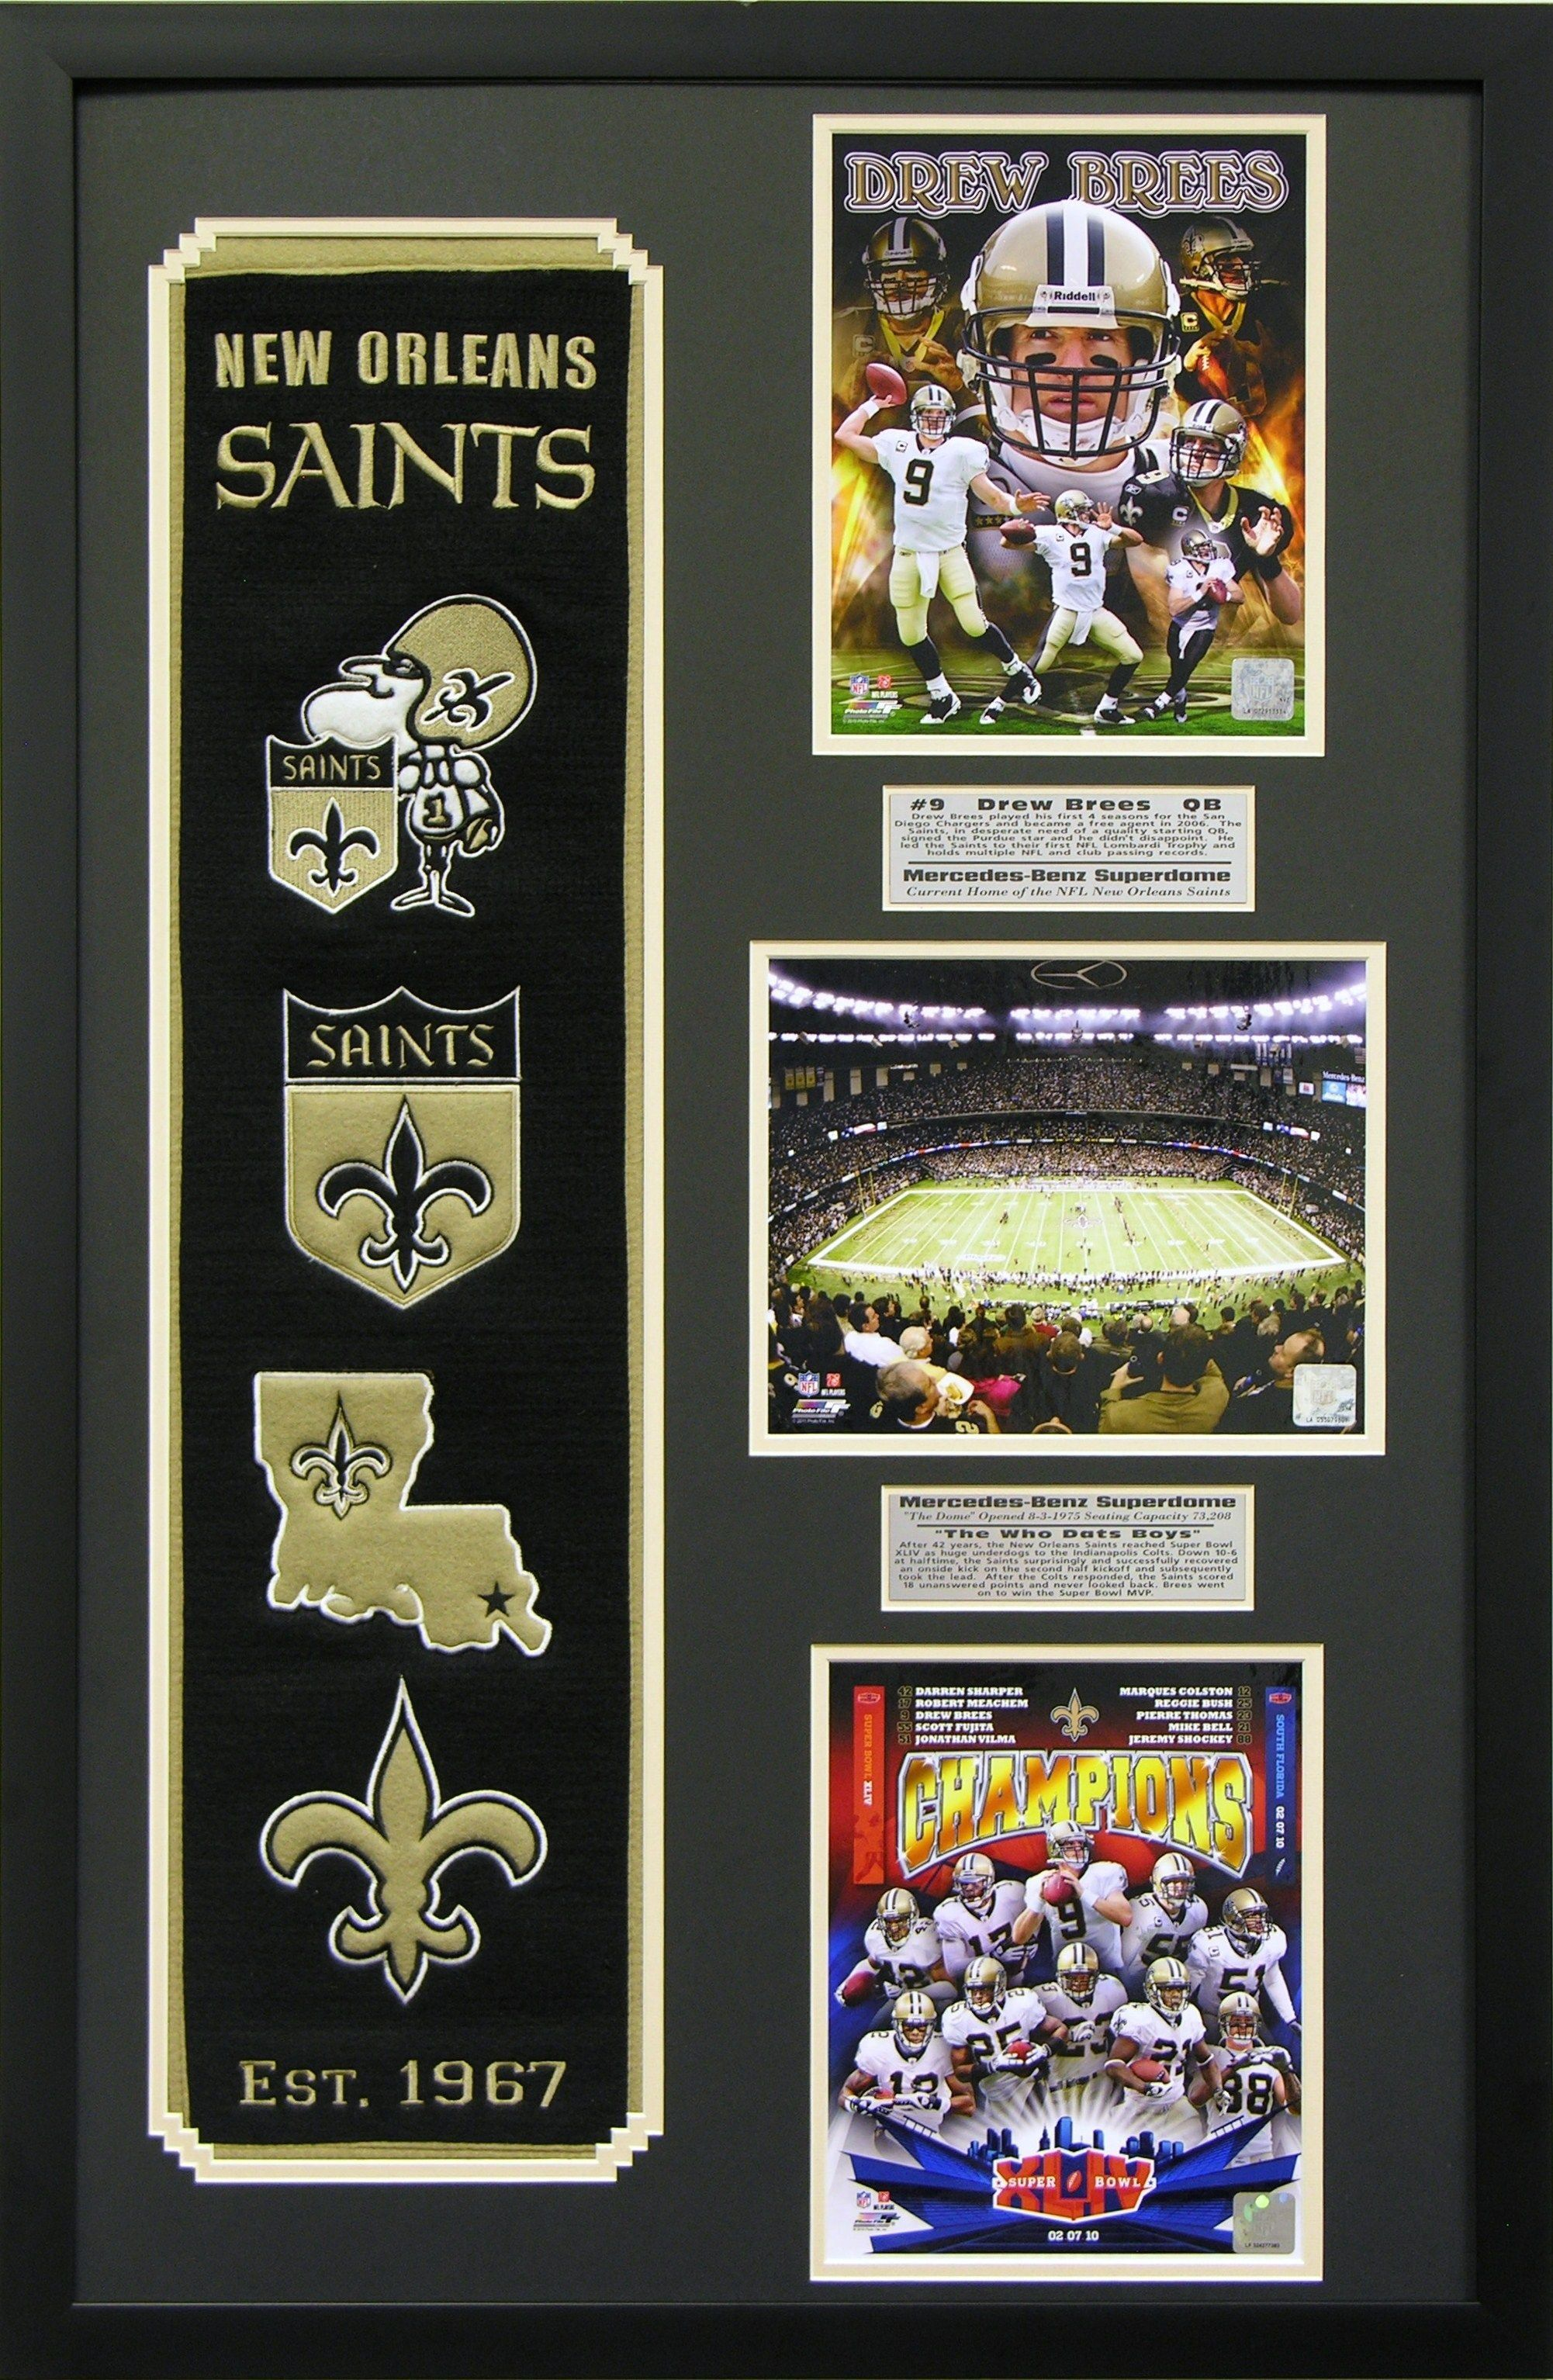 New Orleans Saints Heritage Wall Art Perfect Decor For A Man Cave Basement Or 1000 New Orleans Saints Man Cave Wall Art